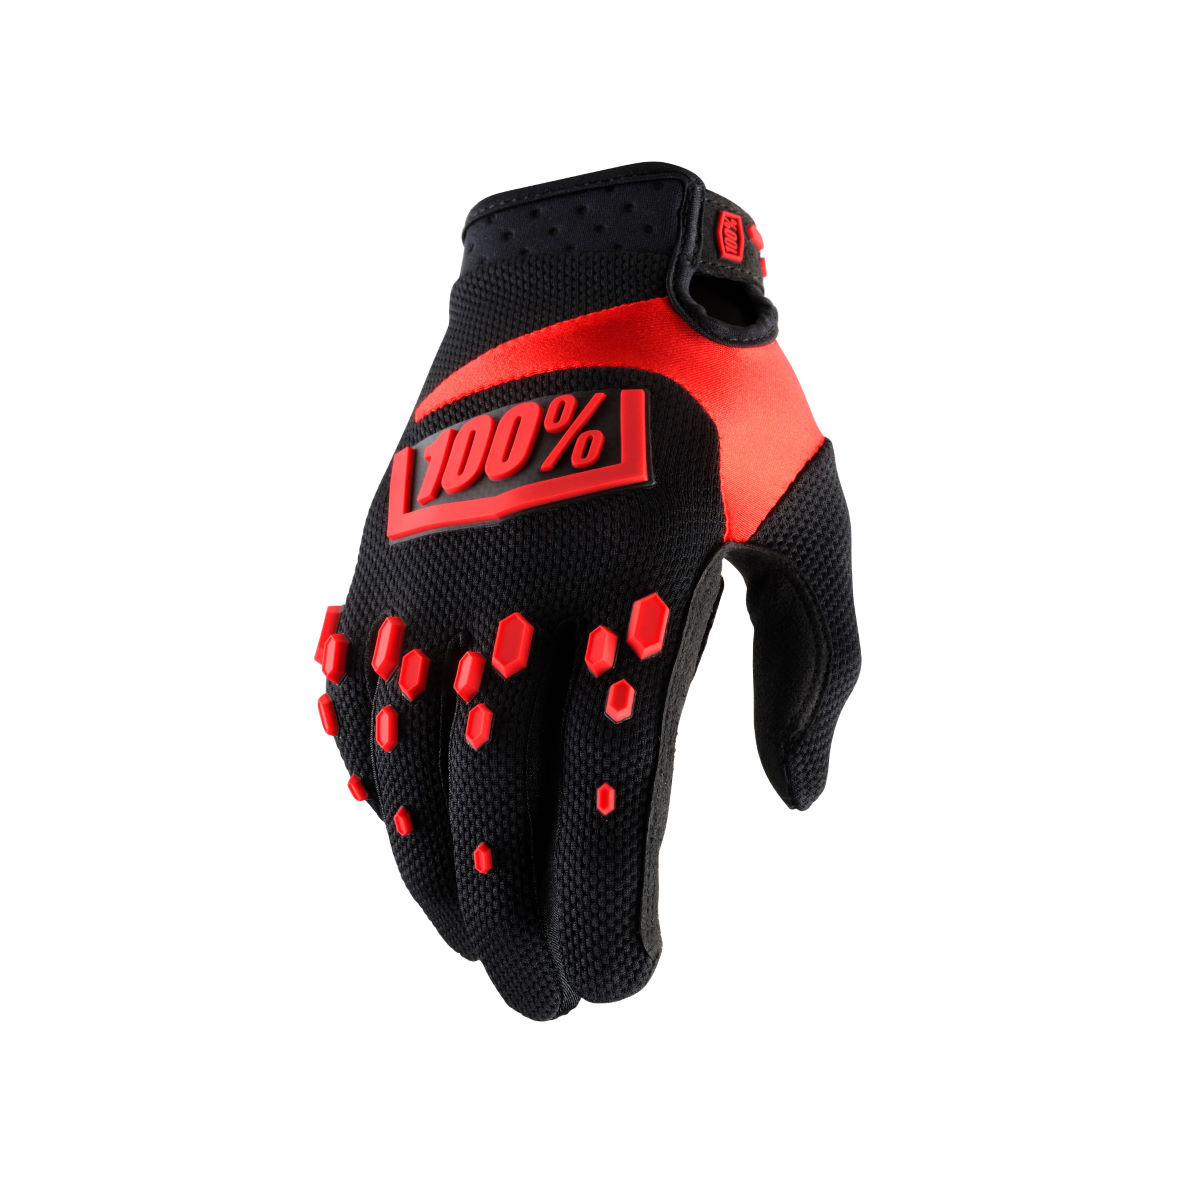 Gants 100% Airmatic - XL Black - Red Gants